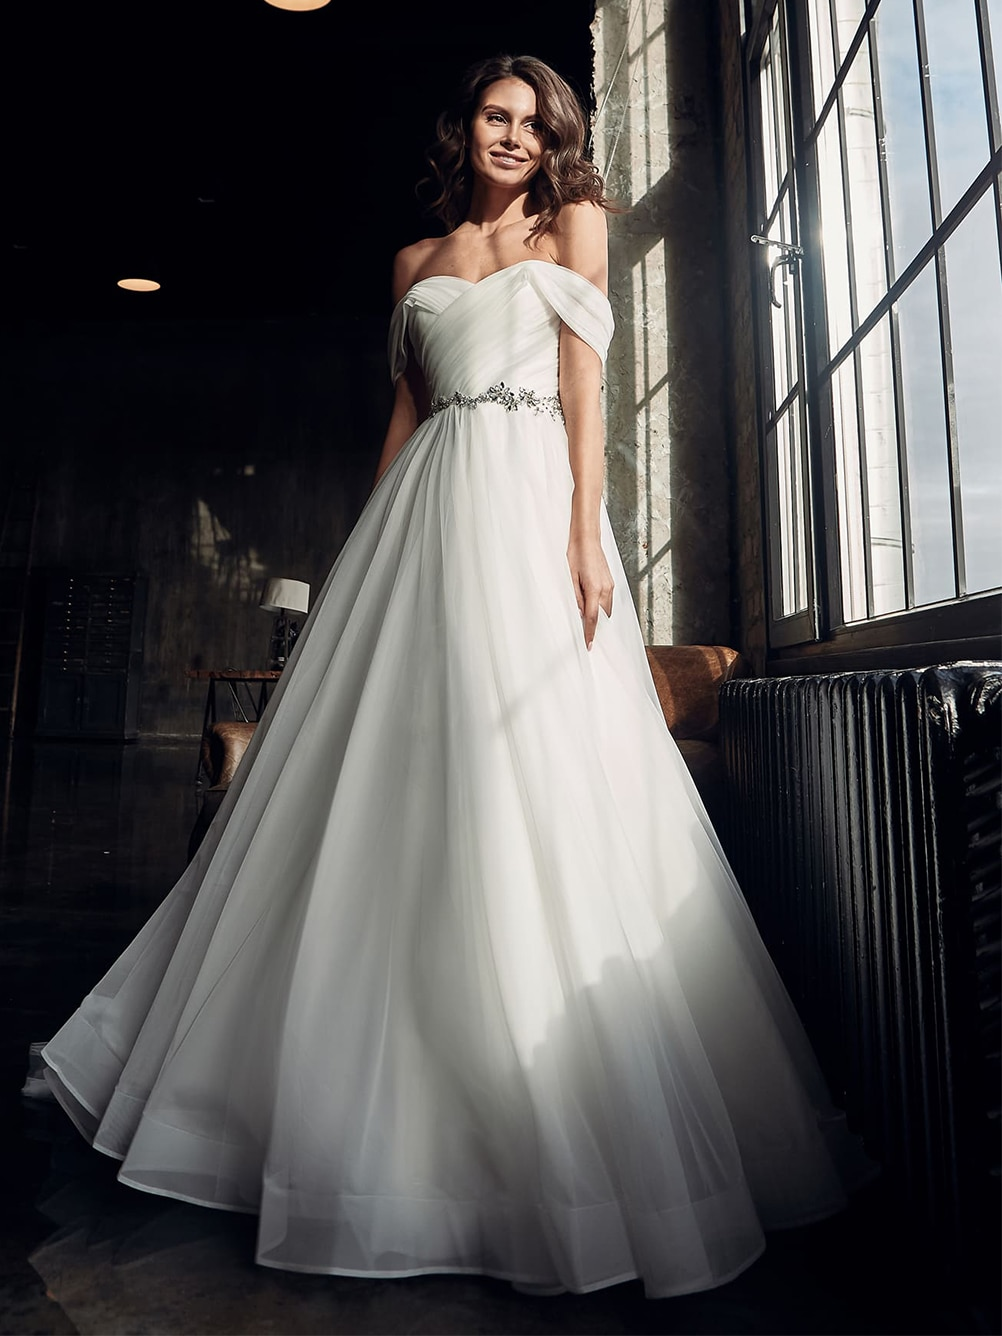 off-the-shoulder-crystal-beads-wedding-dress-princess-custom-made-ruched-pleats-off-white-plus-size-buttons-outdoor-bridal-gowns